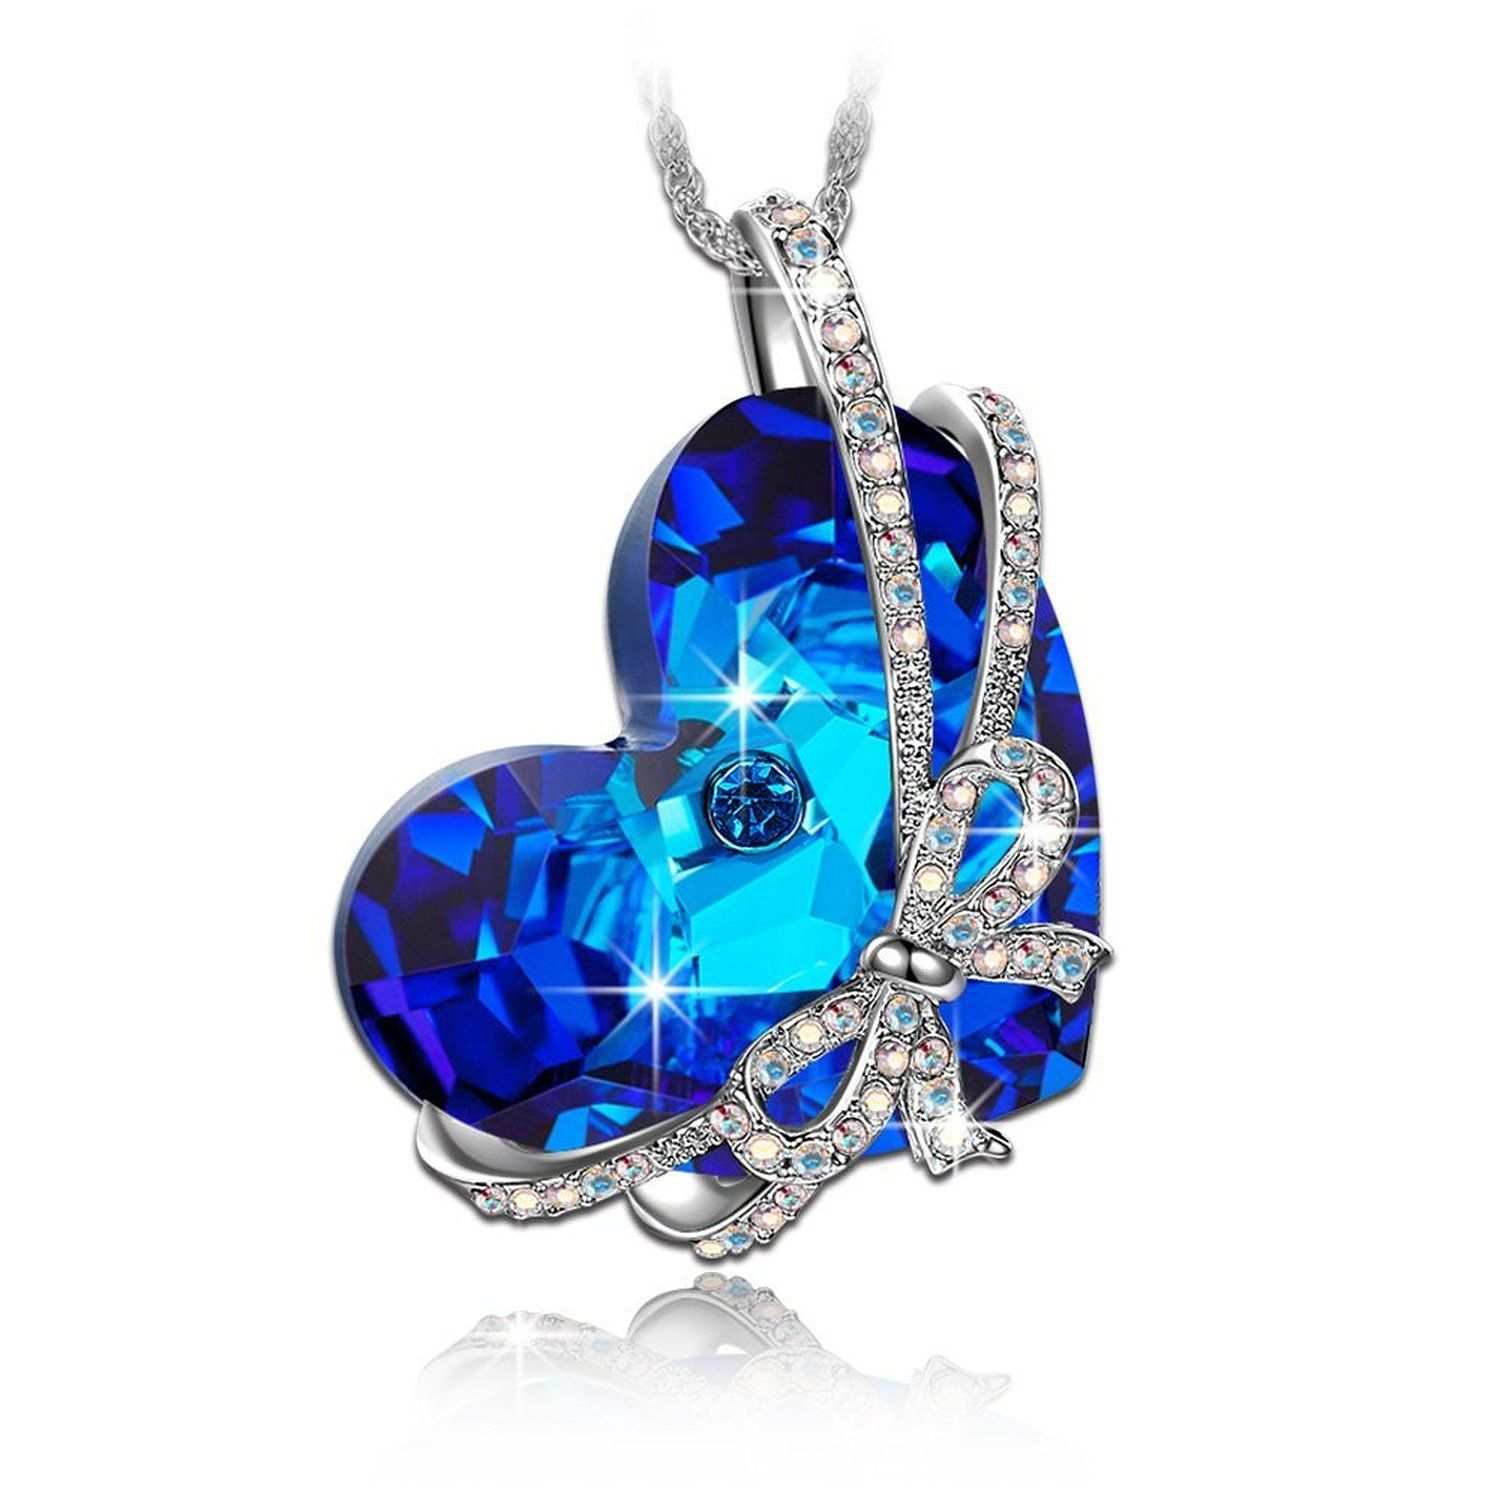 Bundle offer 18k gold plated amp white gold plated necklace 2 ring - Qianse Heart Of The Ocean Bowtie Pendant Necklace Made With Swarovski Crystal Women